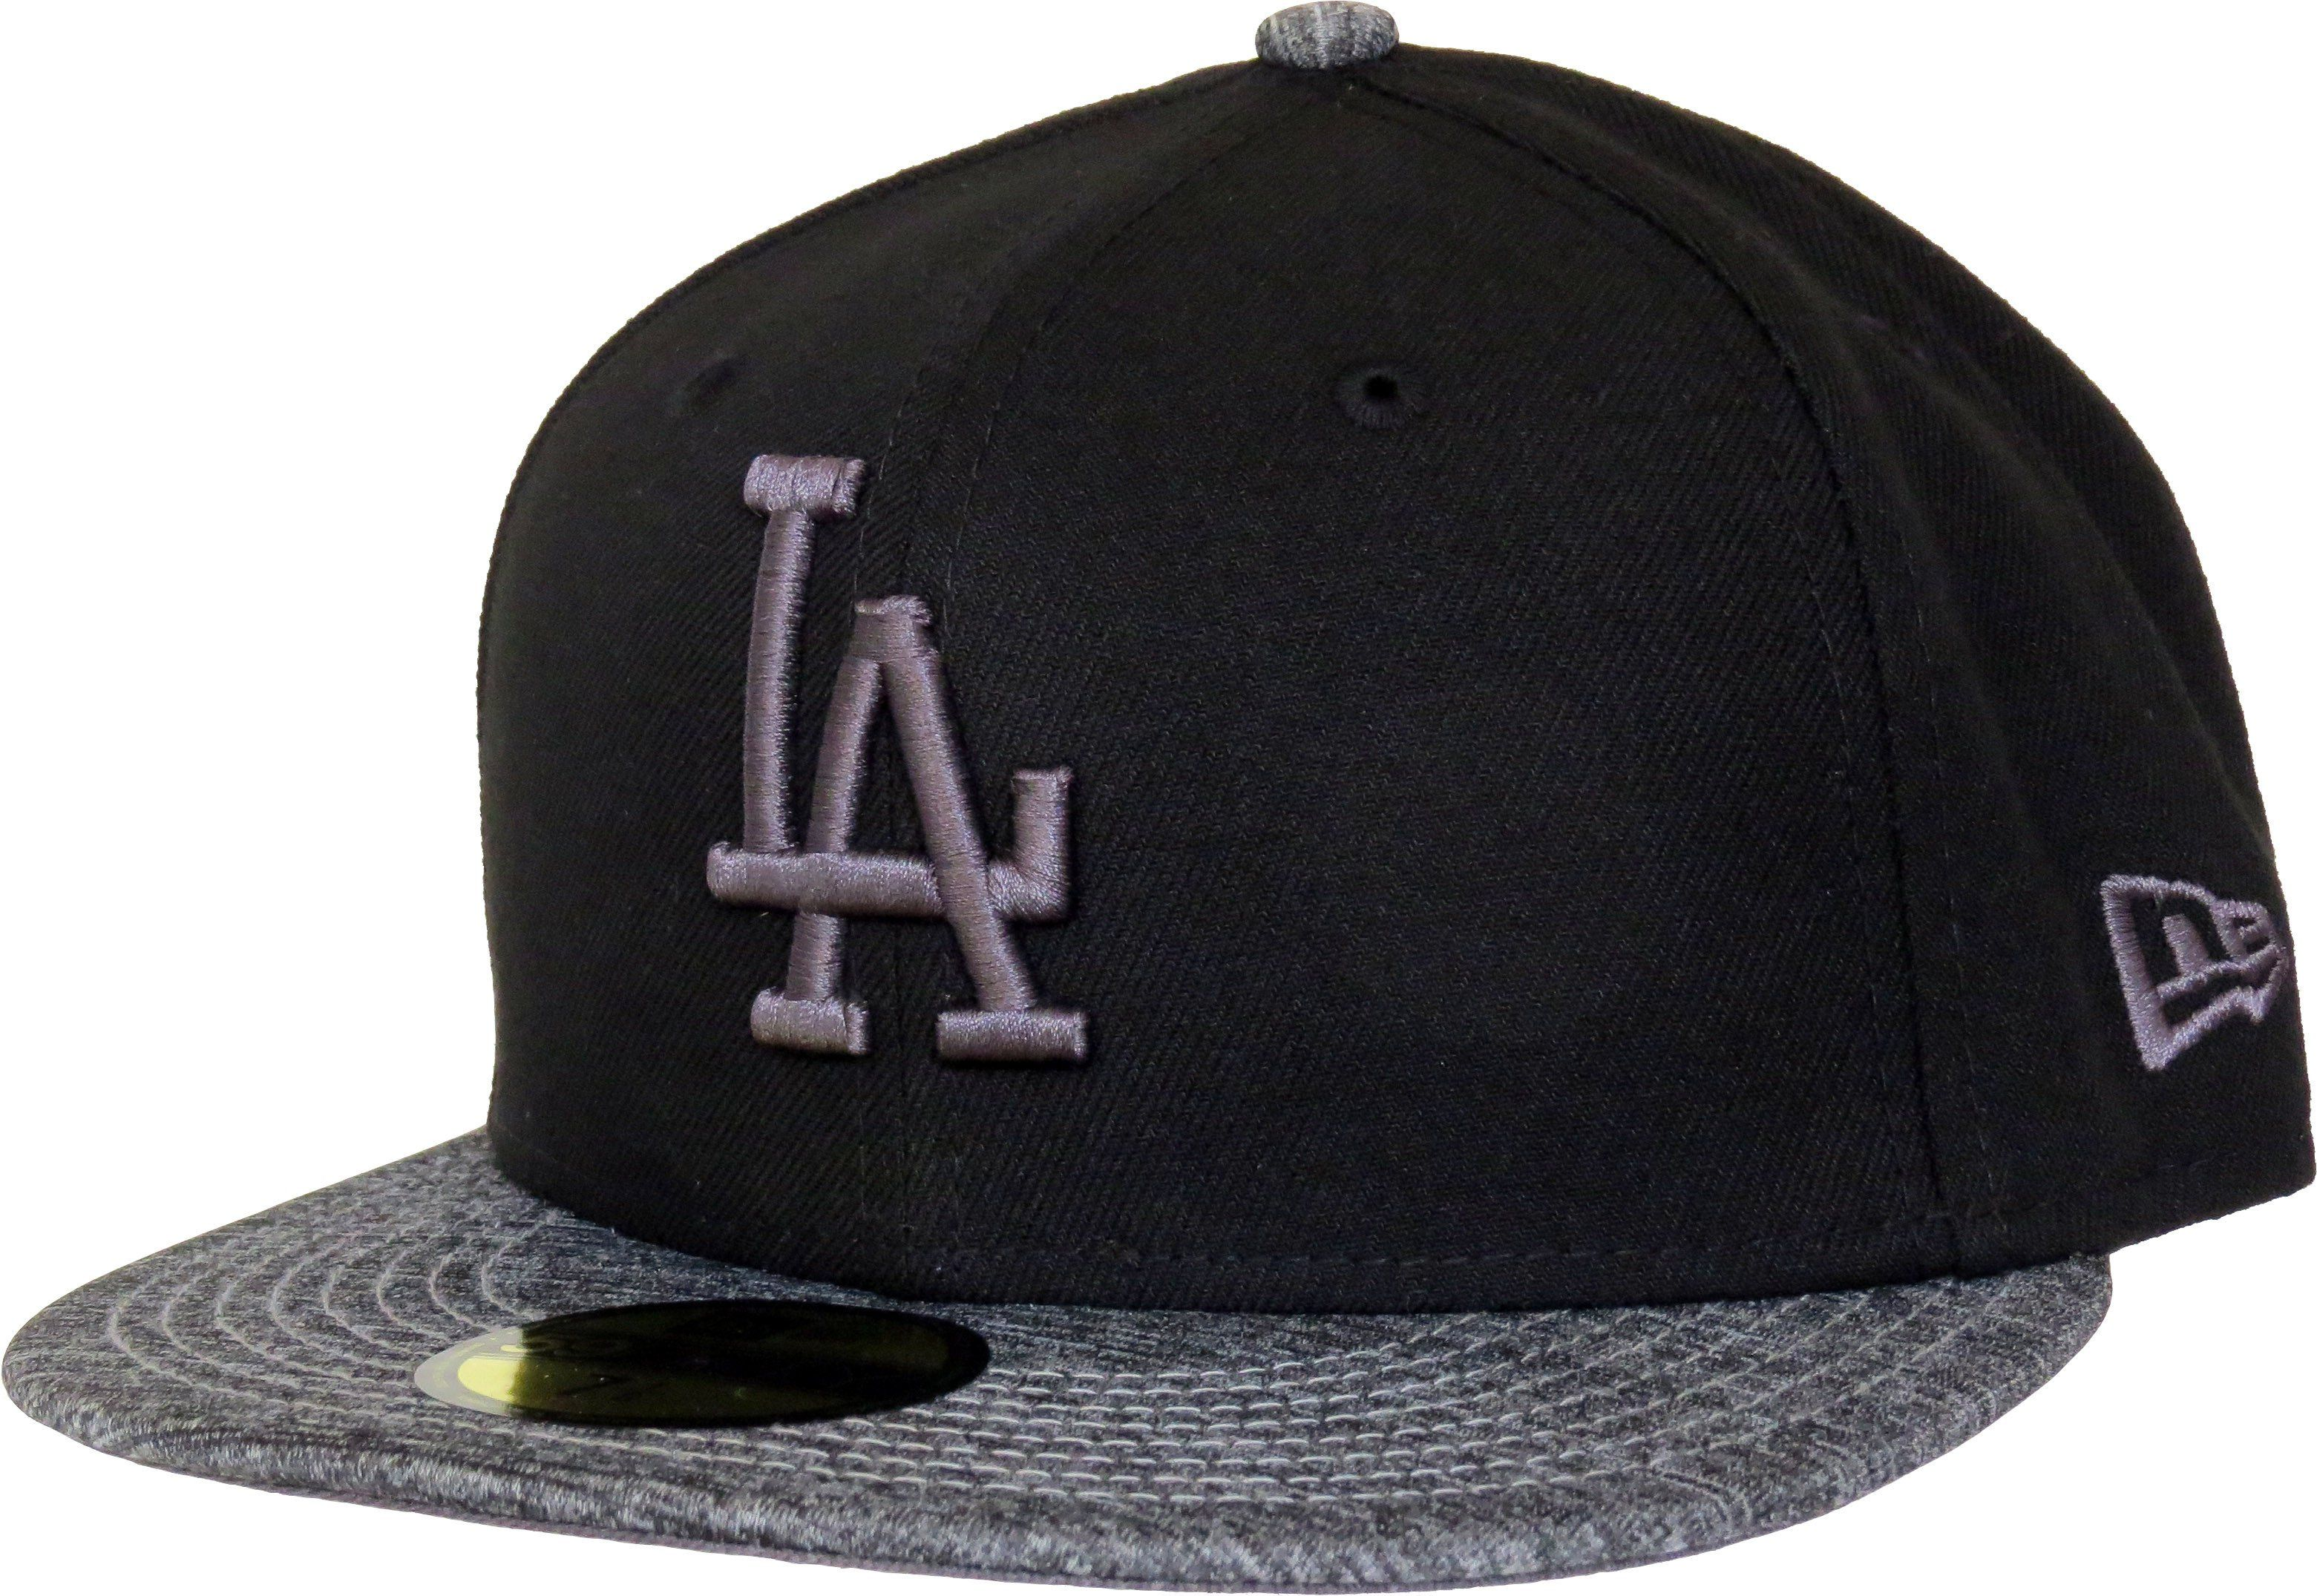 bfff6c9b66c21 New Era 59Fifty MLB Grey Collection Fitted Team Cap. Black with the LA  Dodgers front